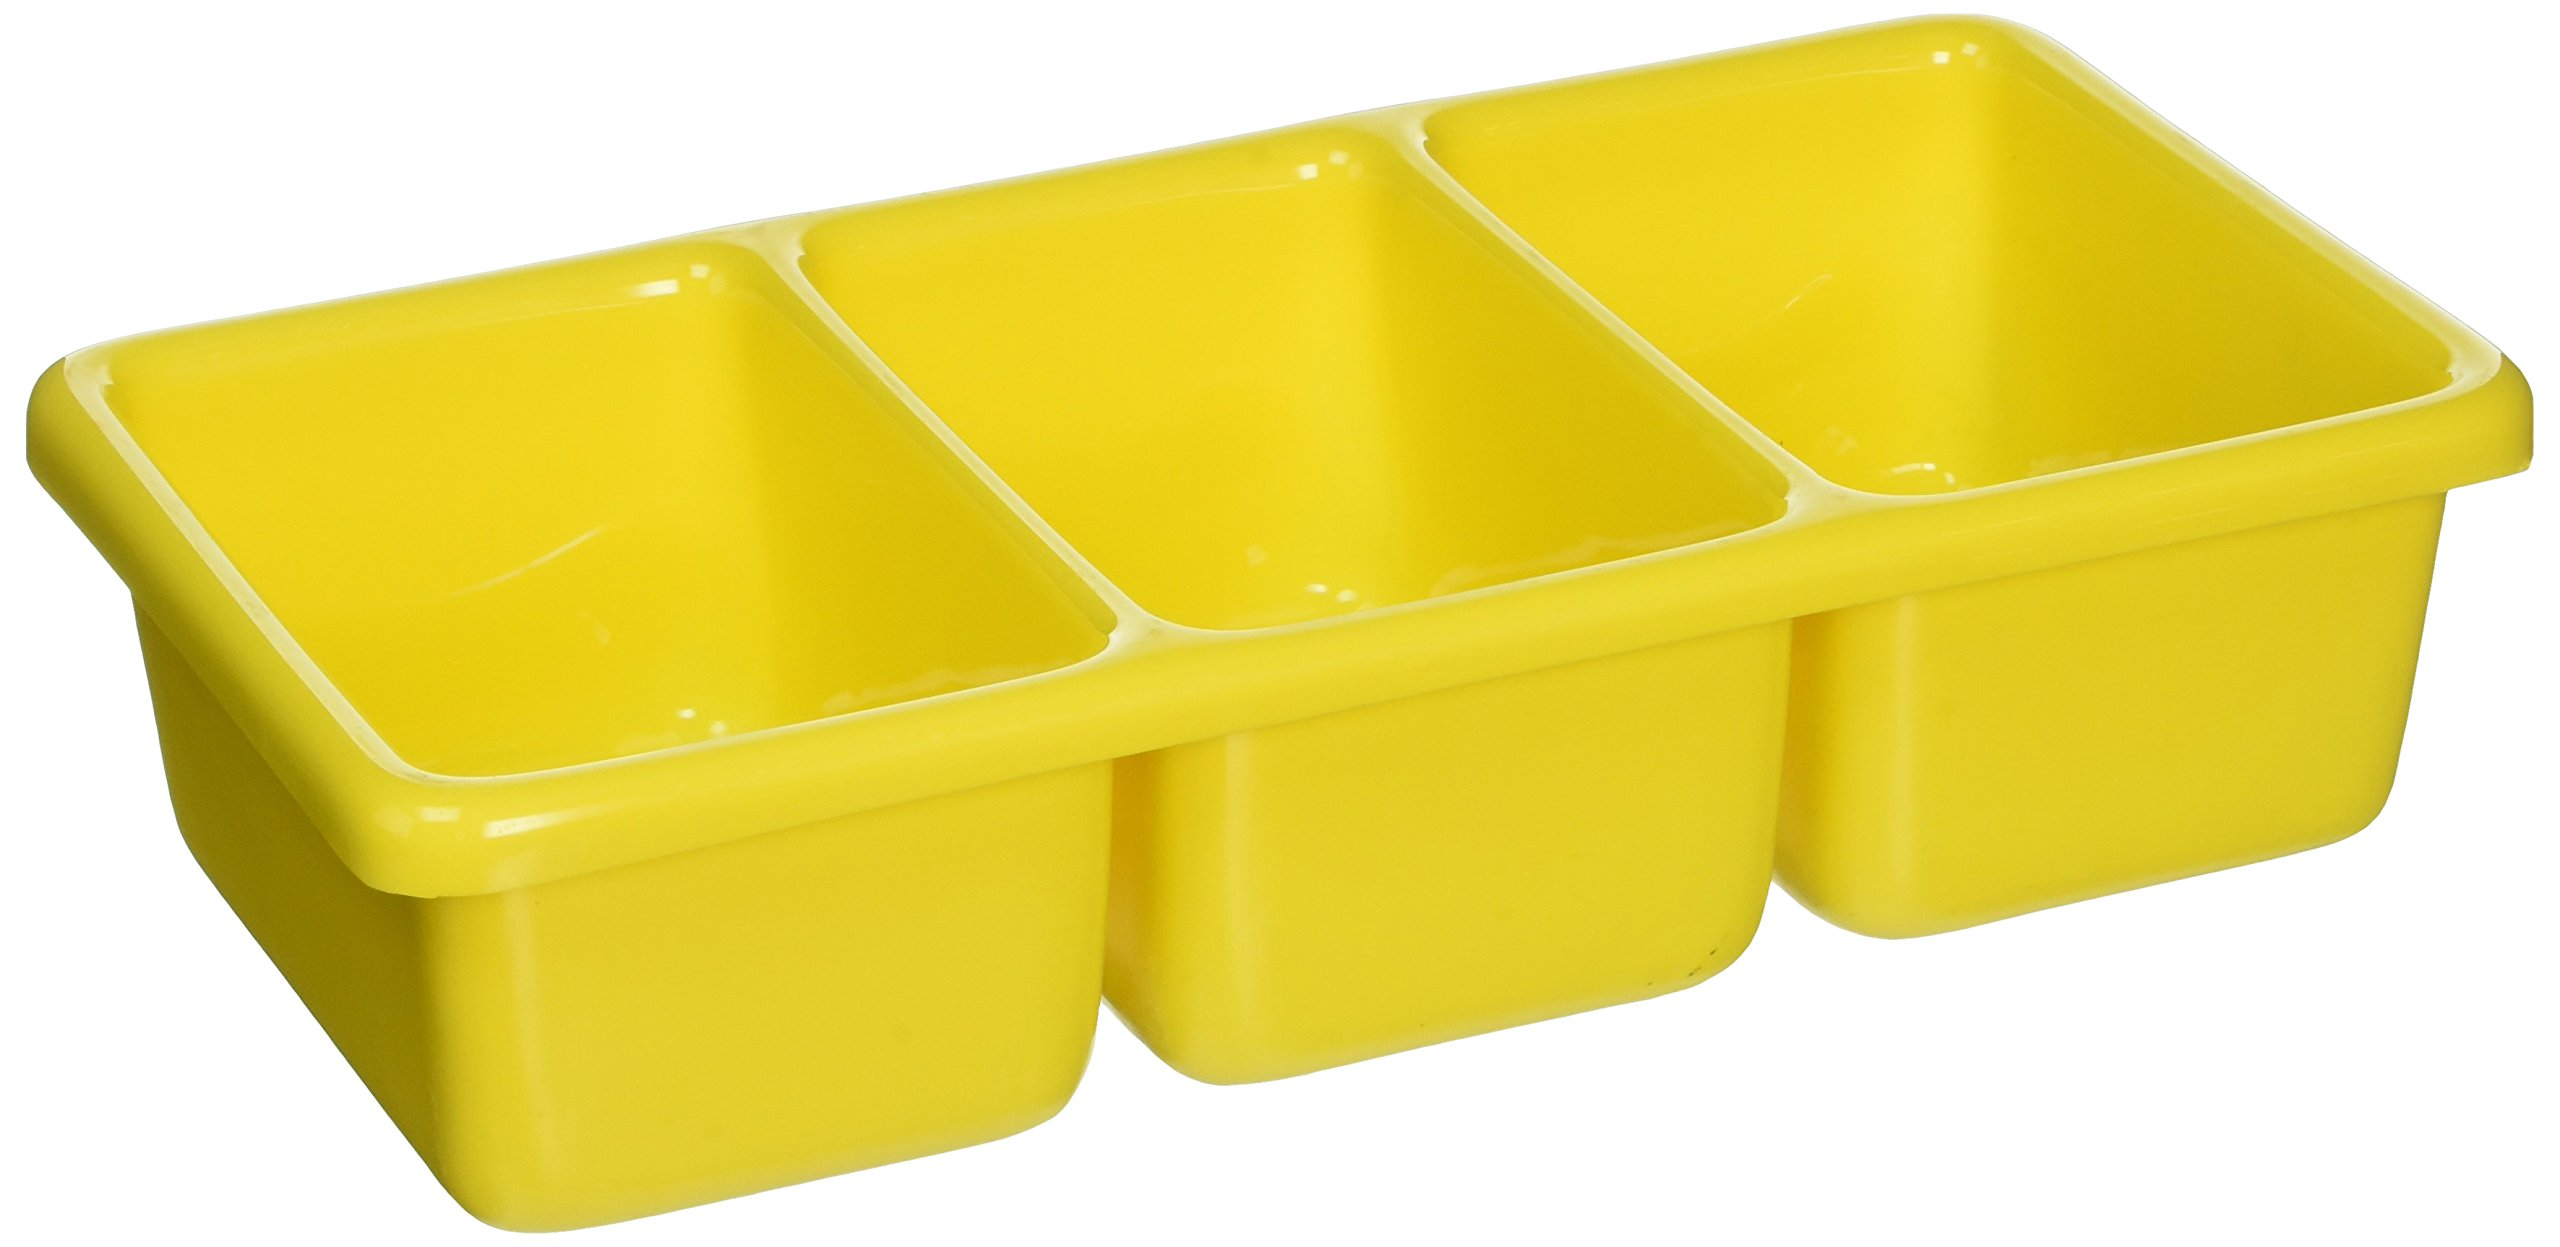 Shirley K'S Storage Trays PT152-Yellow Compartment Tray, 3-Place, Yellow